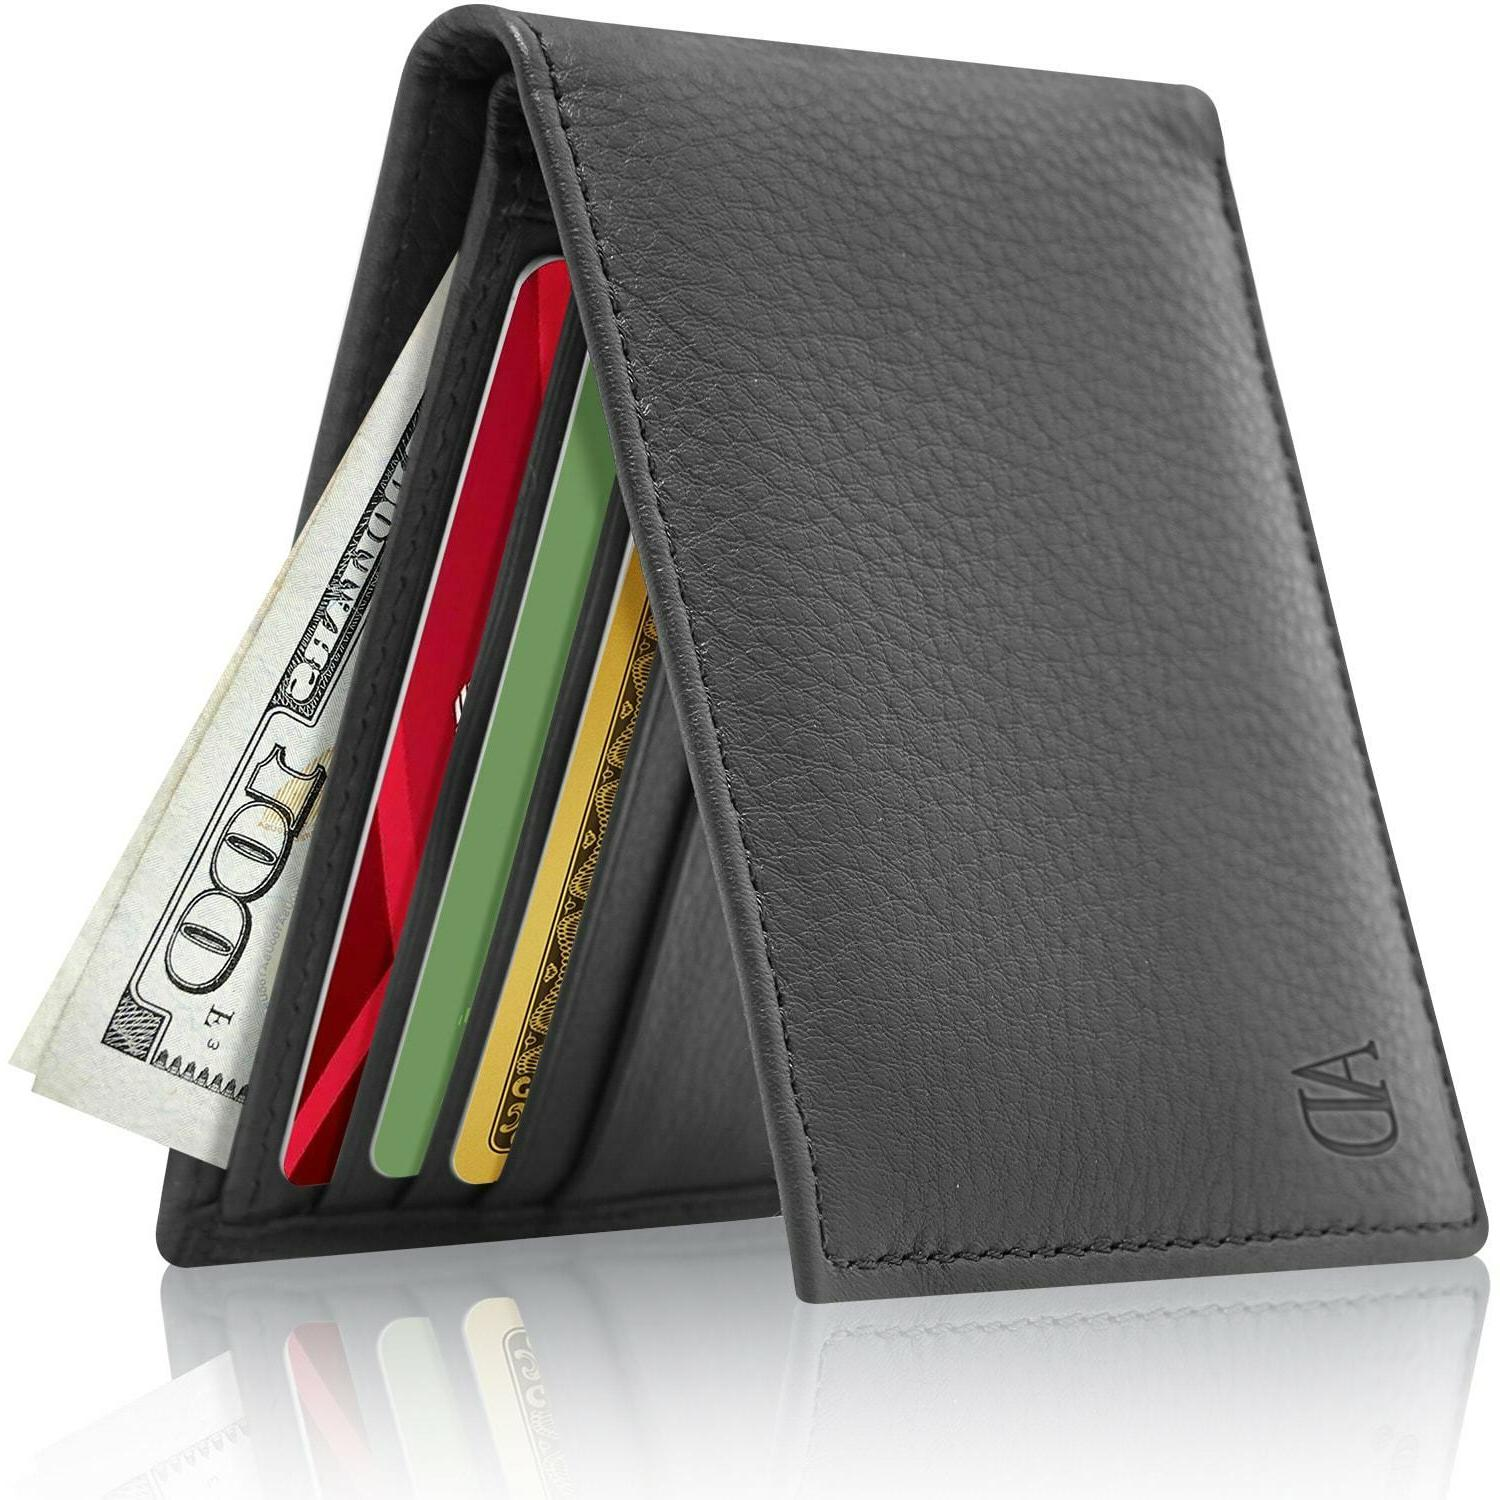 brand new leather slim wallet for men